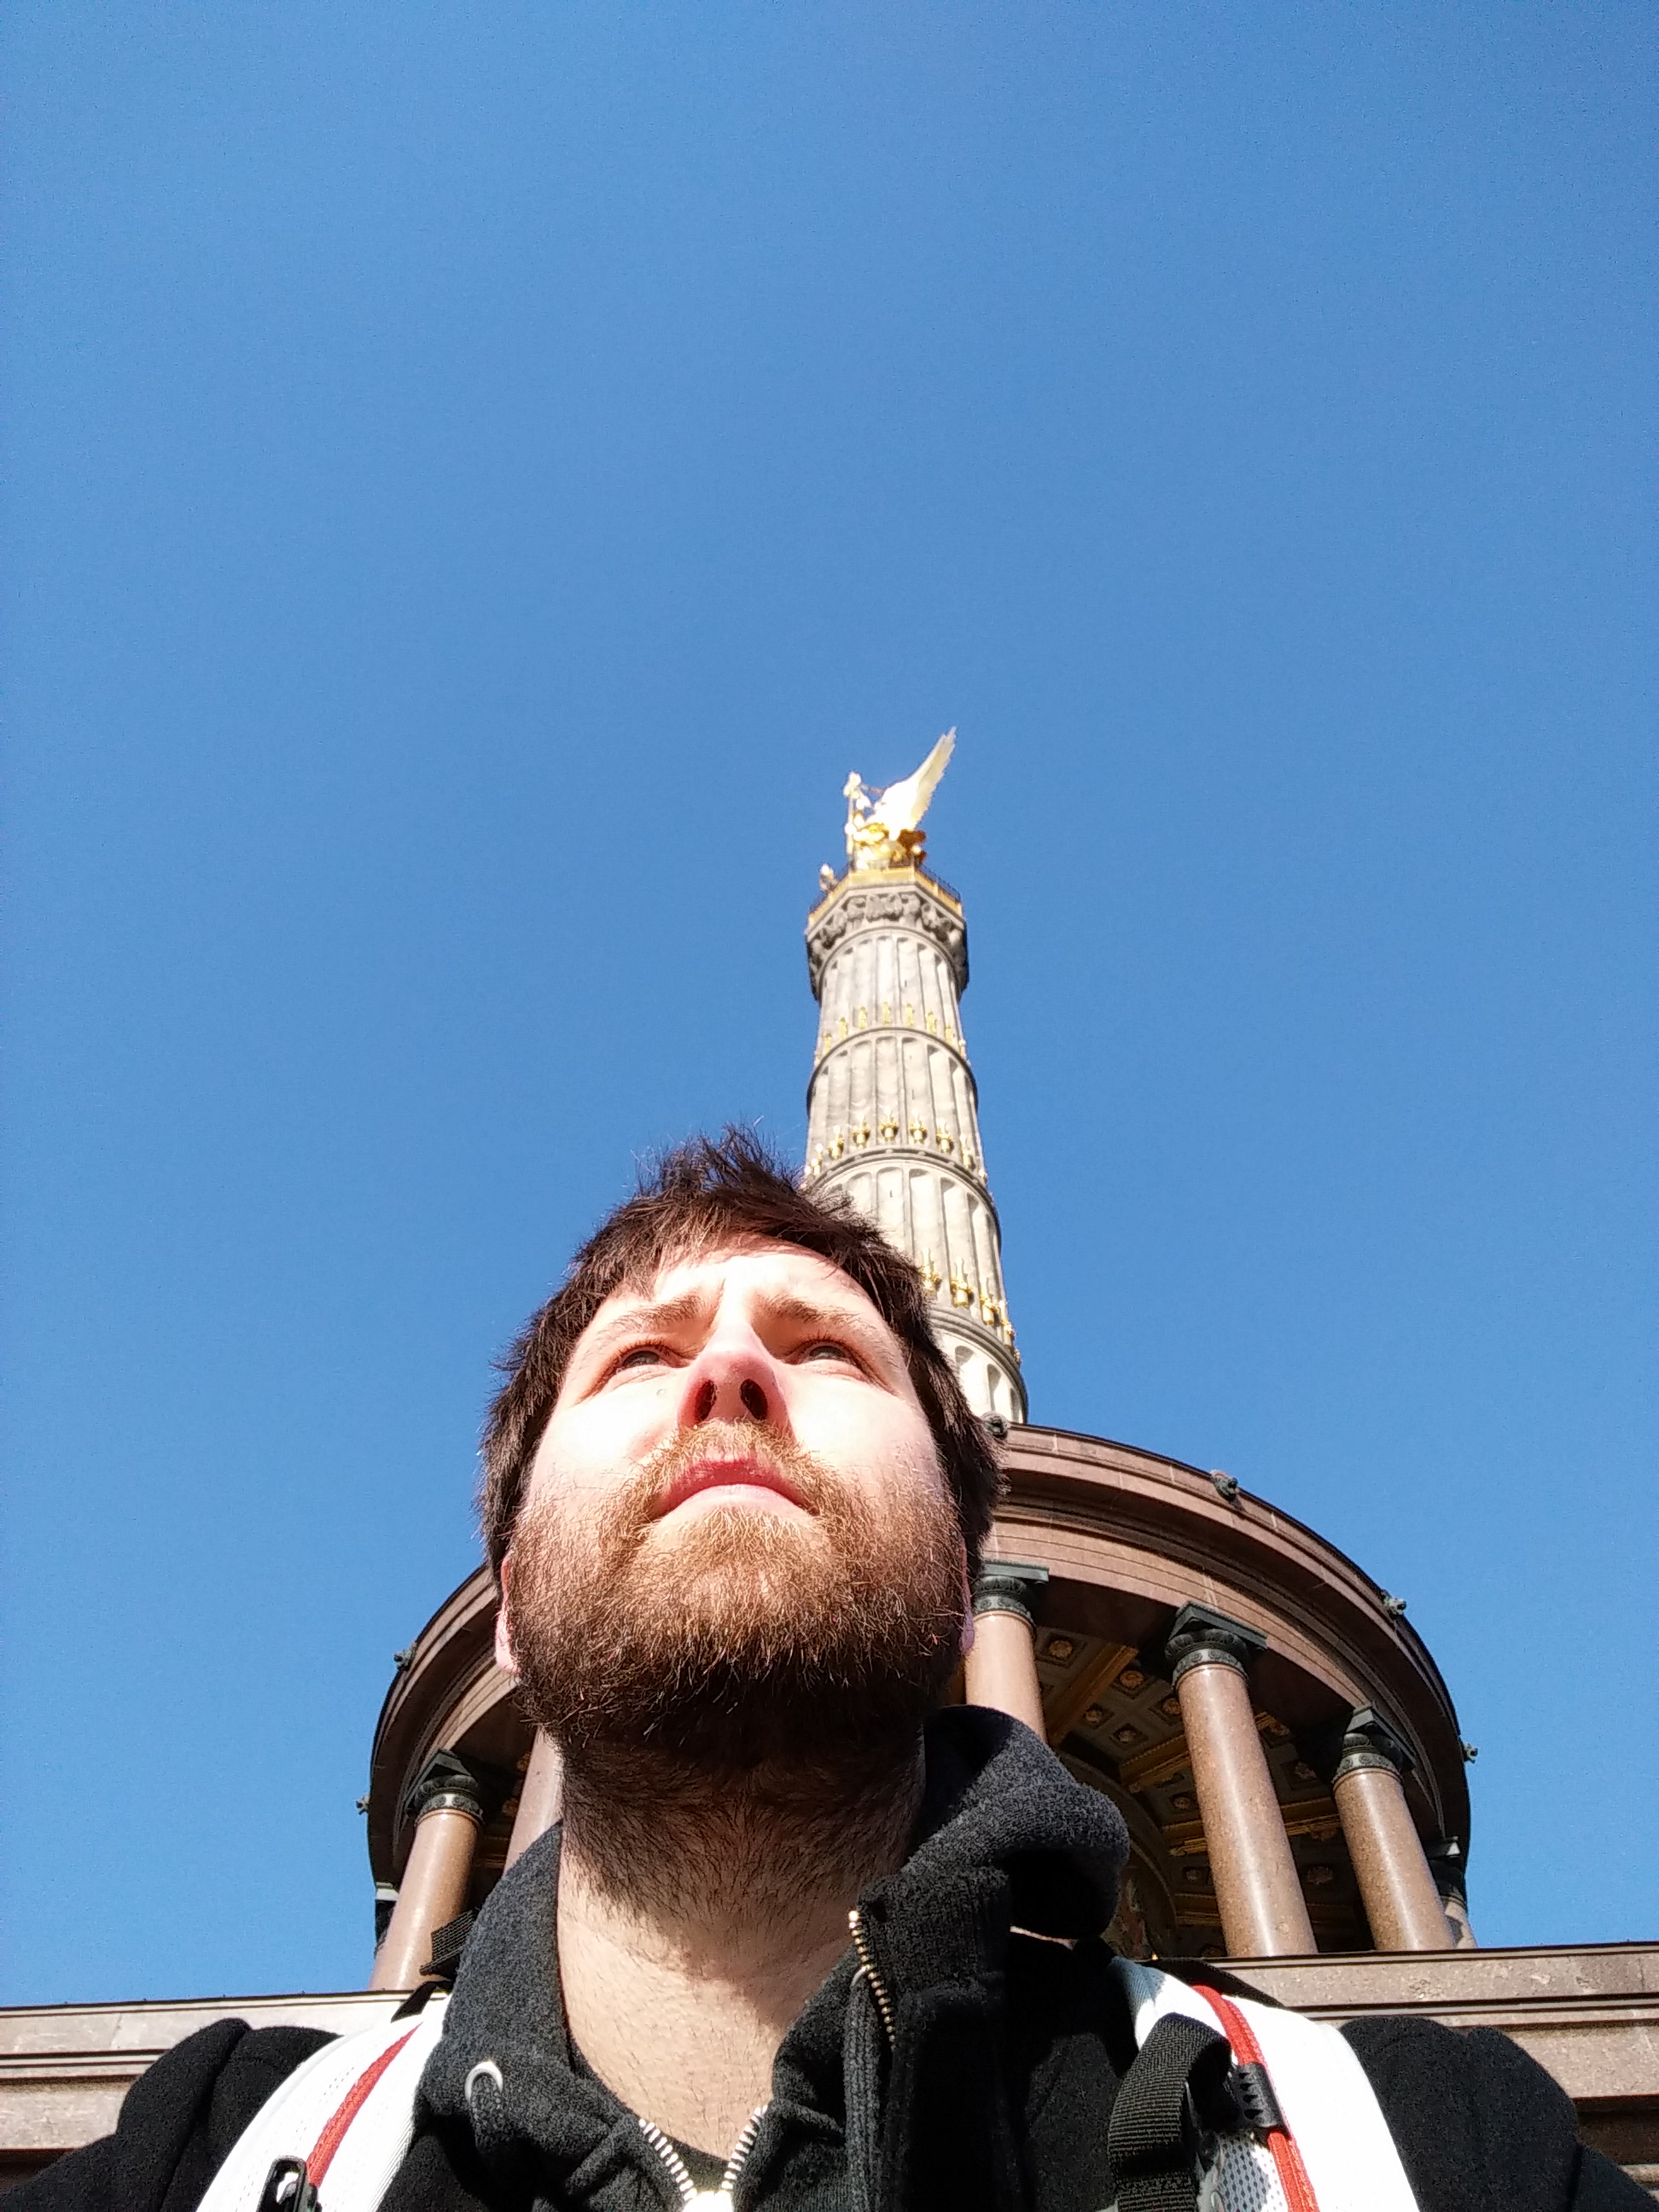 selfie at victory column